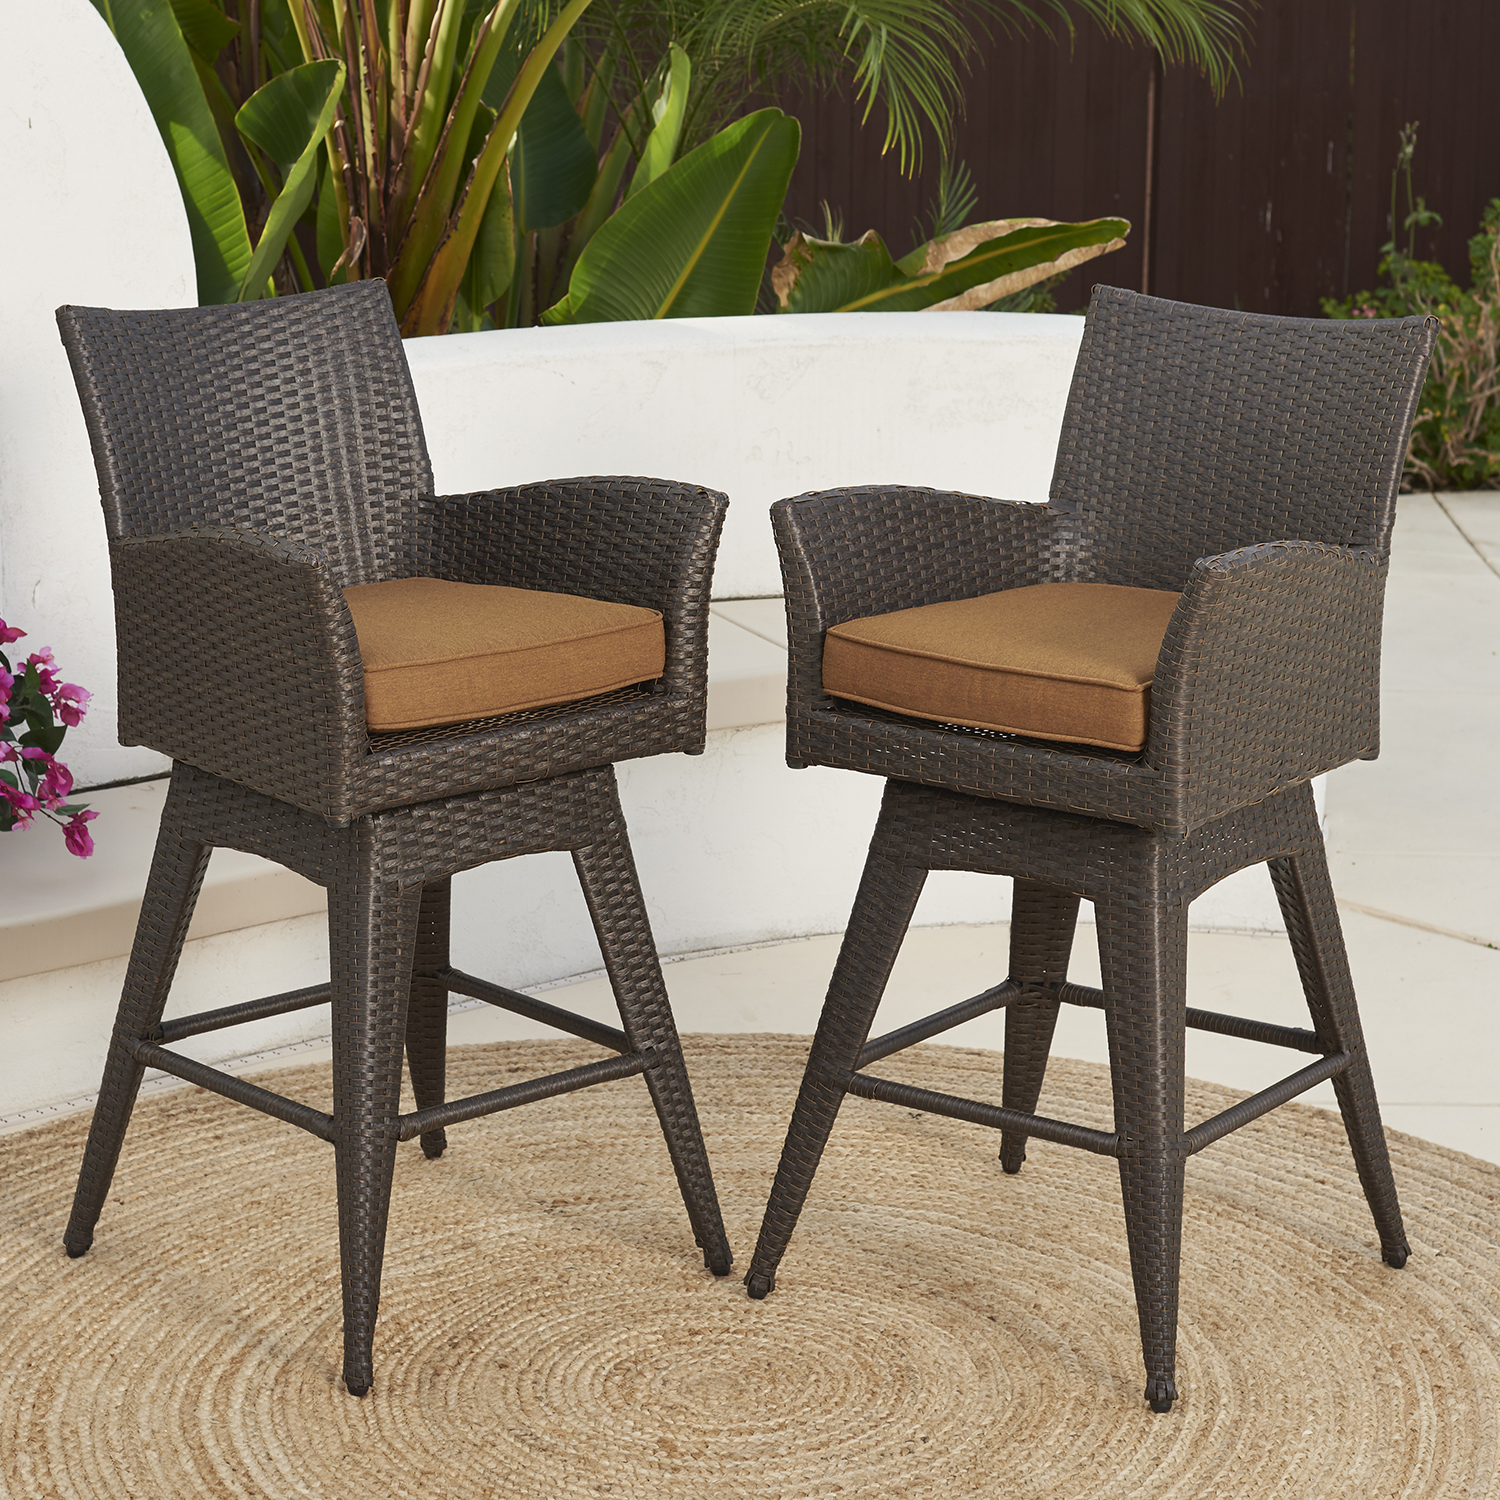 Magnificent Santa Fe 2Pk Swivel Barstools Canvas Teak Mission Hills Unemploymentrelief Wooden Chair Designs For Living Room Unemploymentrelieforg